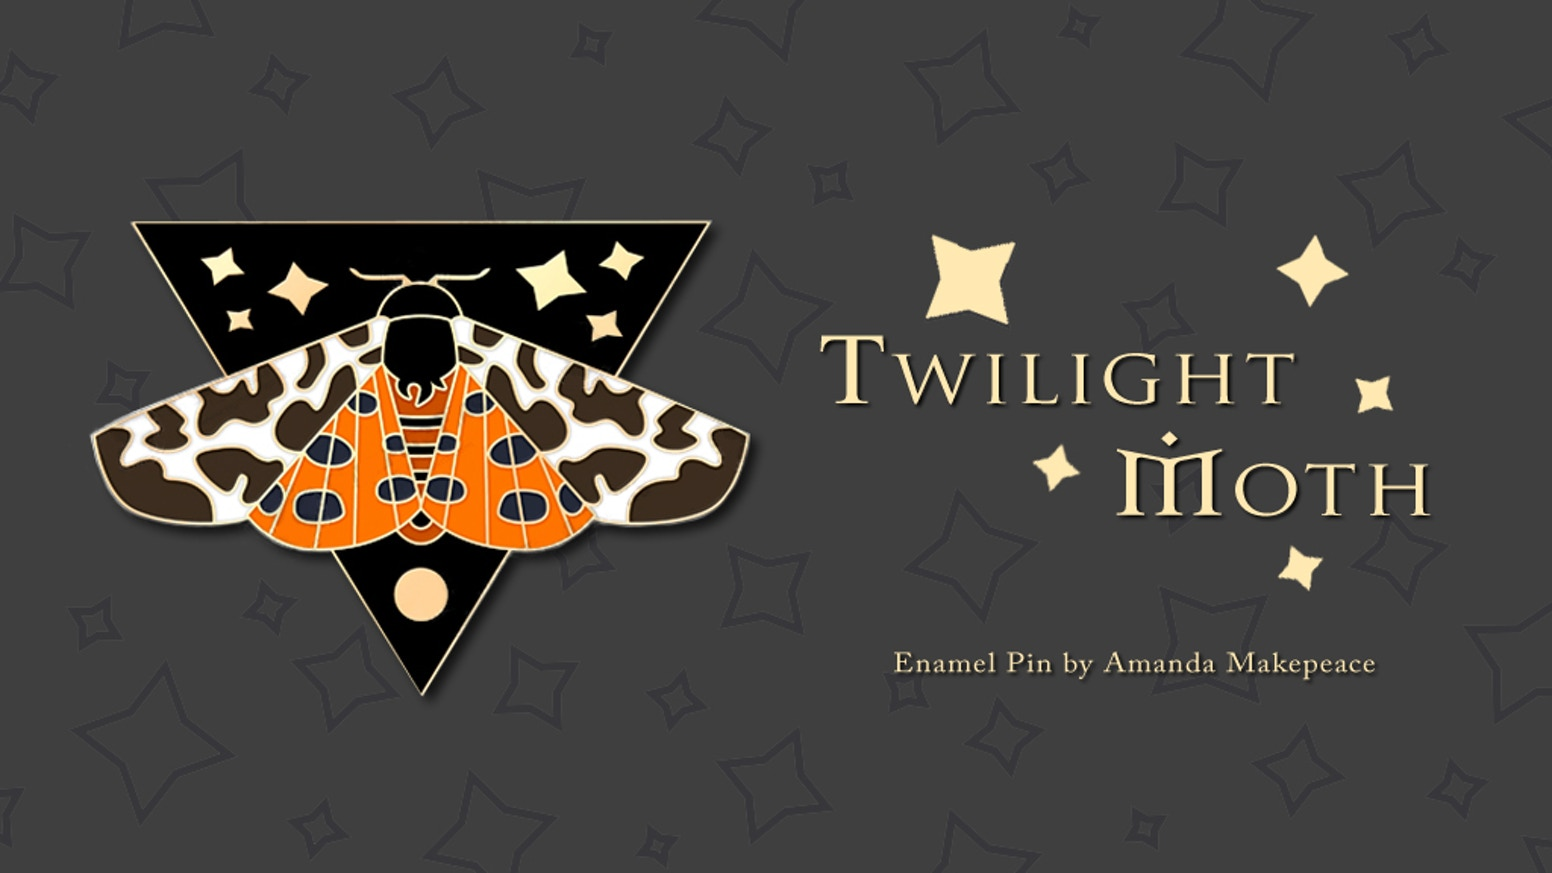 Twilight Moth is a limited edition hard enamel pin inspired by my love of nature and magic.